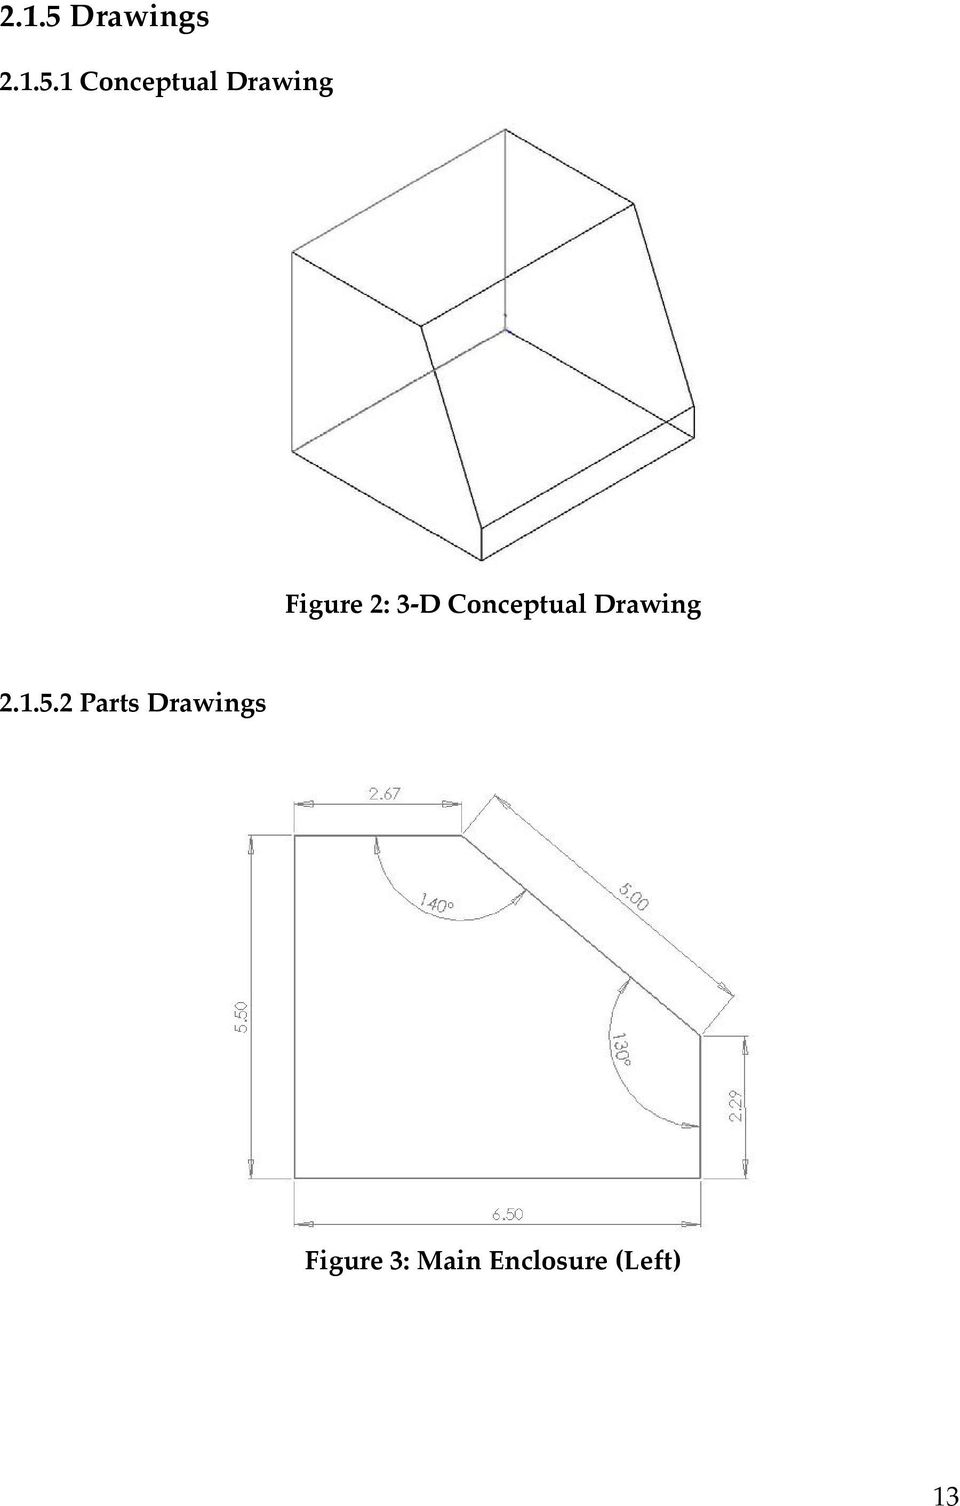 1 Conceptual Drawing Figure 2: 3